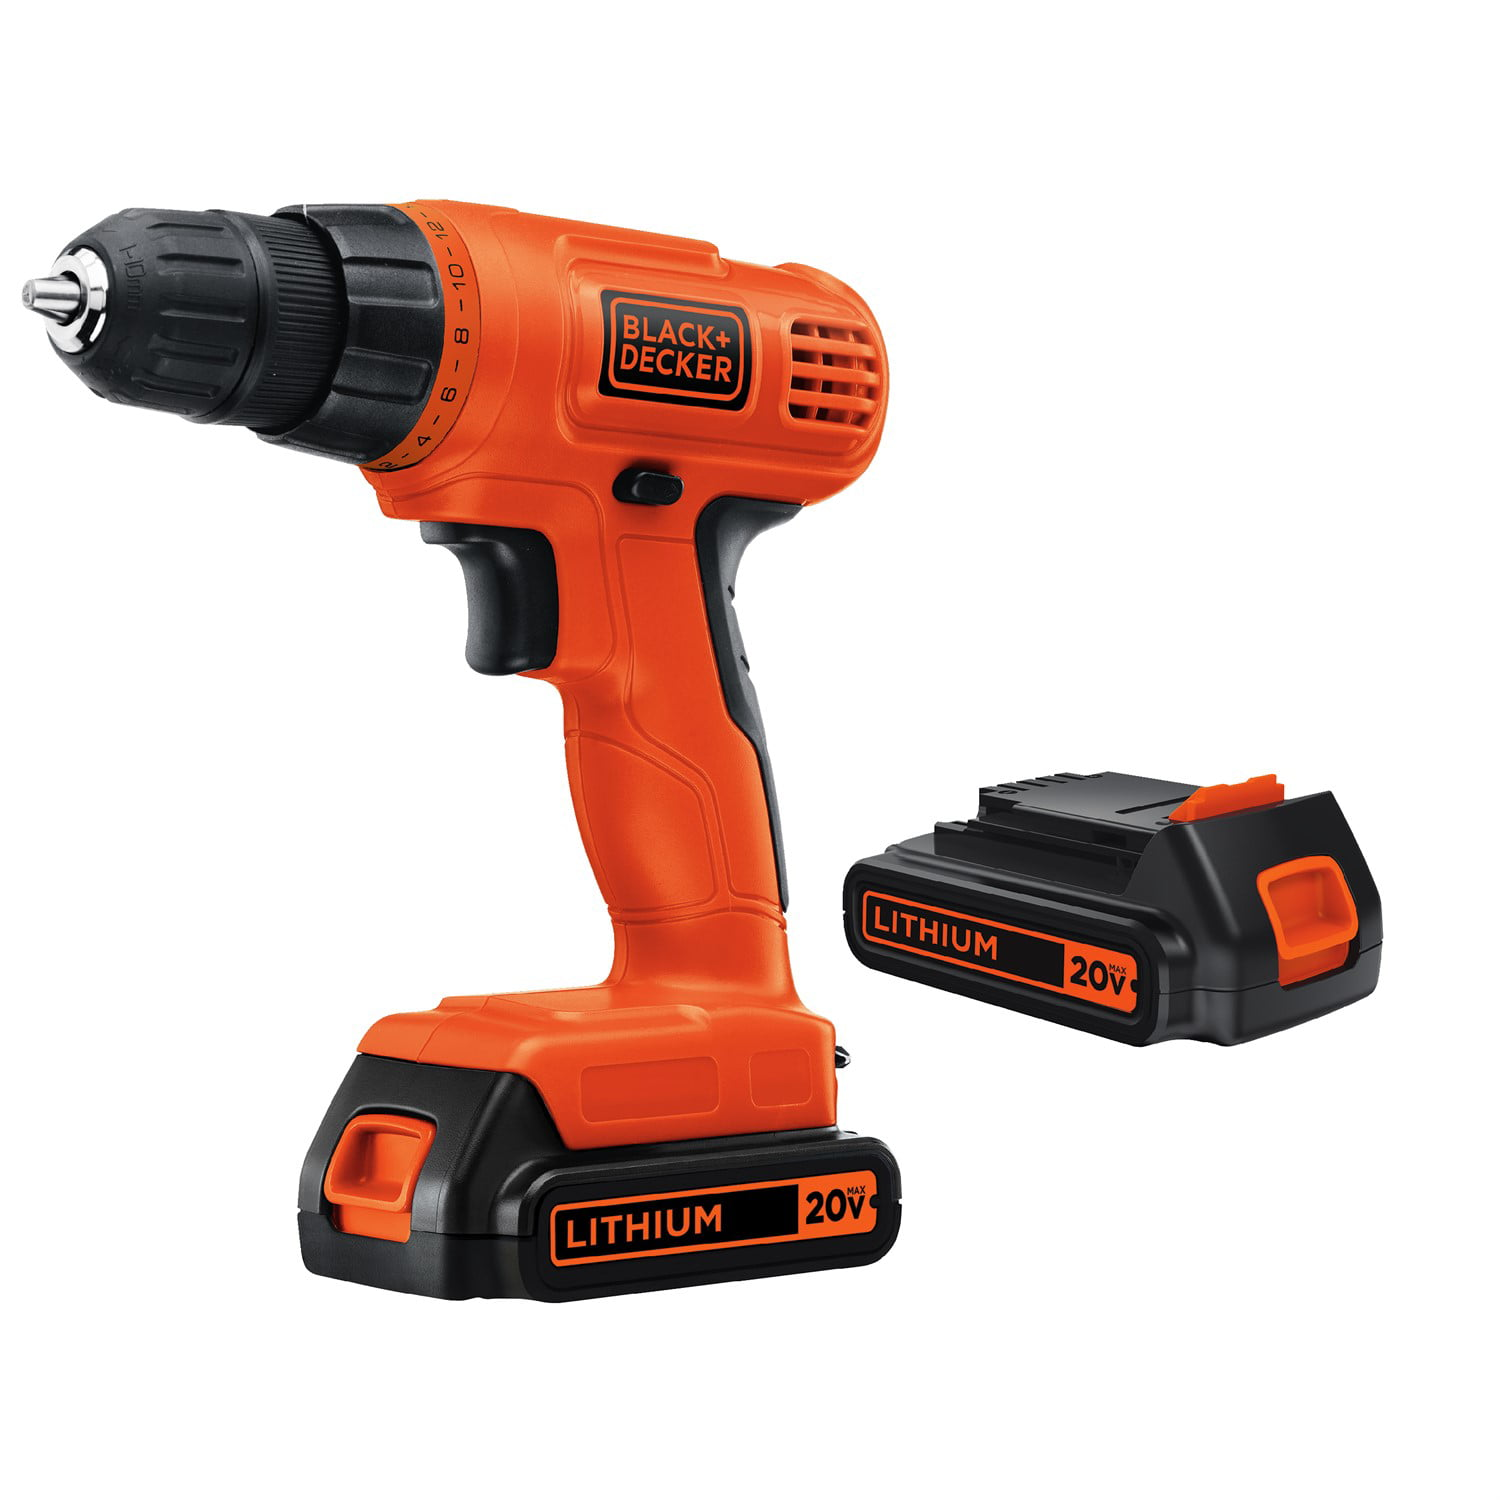 Black & Decker 20-Volt MAX Lithium Ion Cordless Drill with 2 Batteries by BLACK & DECKER MACAO COMMERCIAL OFFSHORE LTD